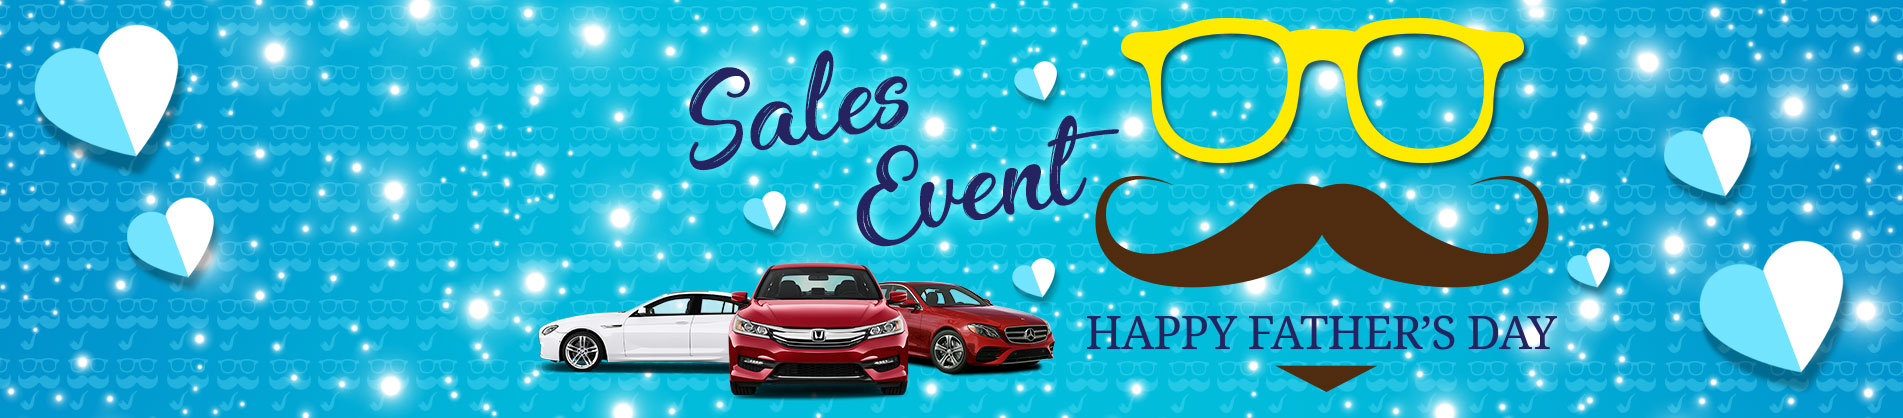 Rite Cars Father's day sales event